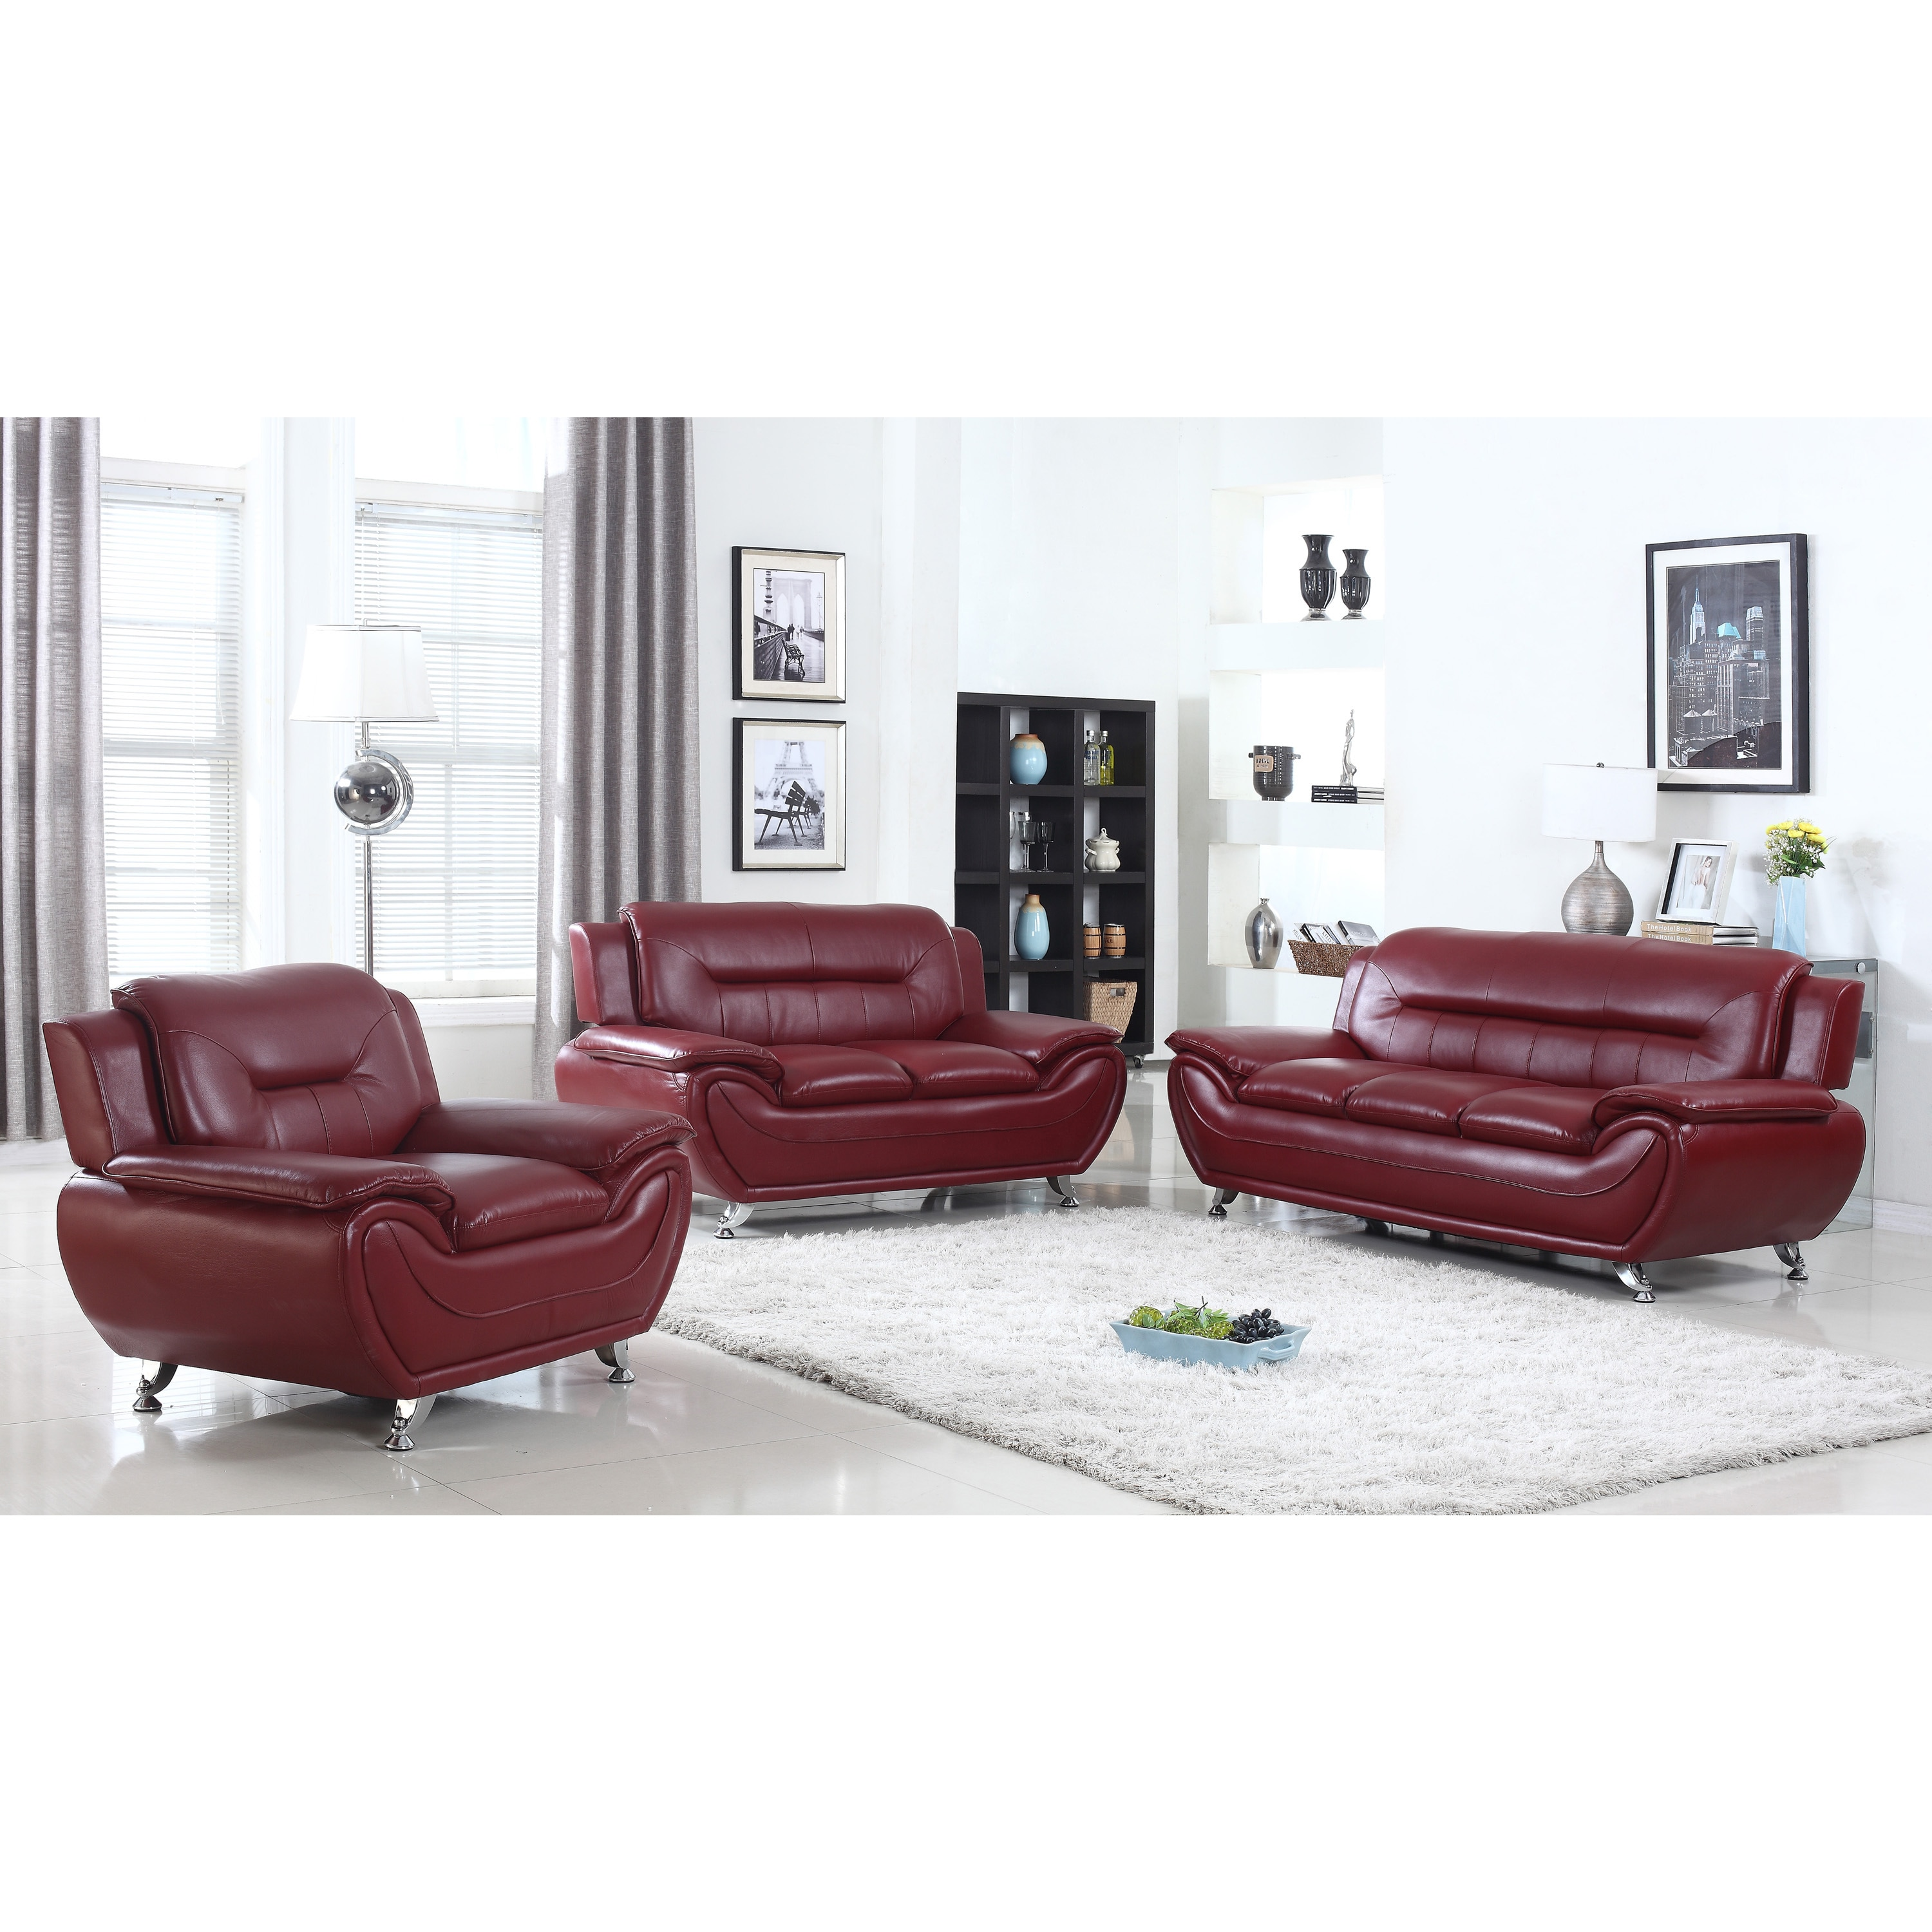 Deliah relaxing contemporary modern style 3pc sofa set-3 colors